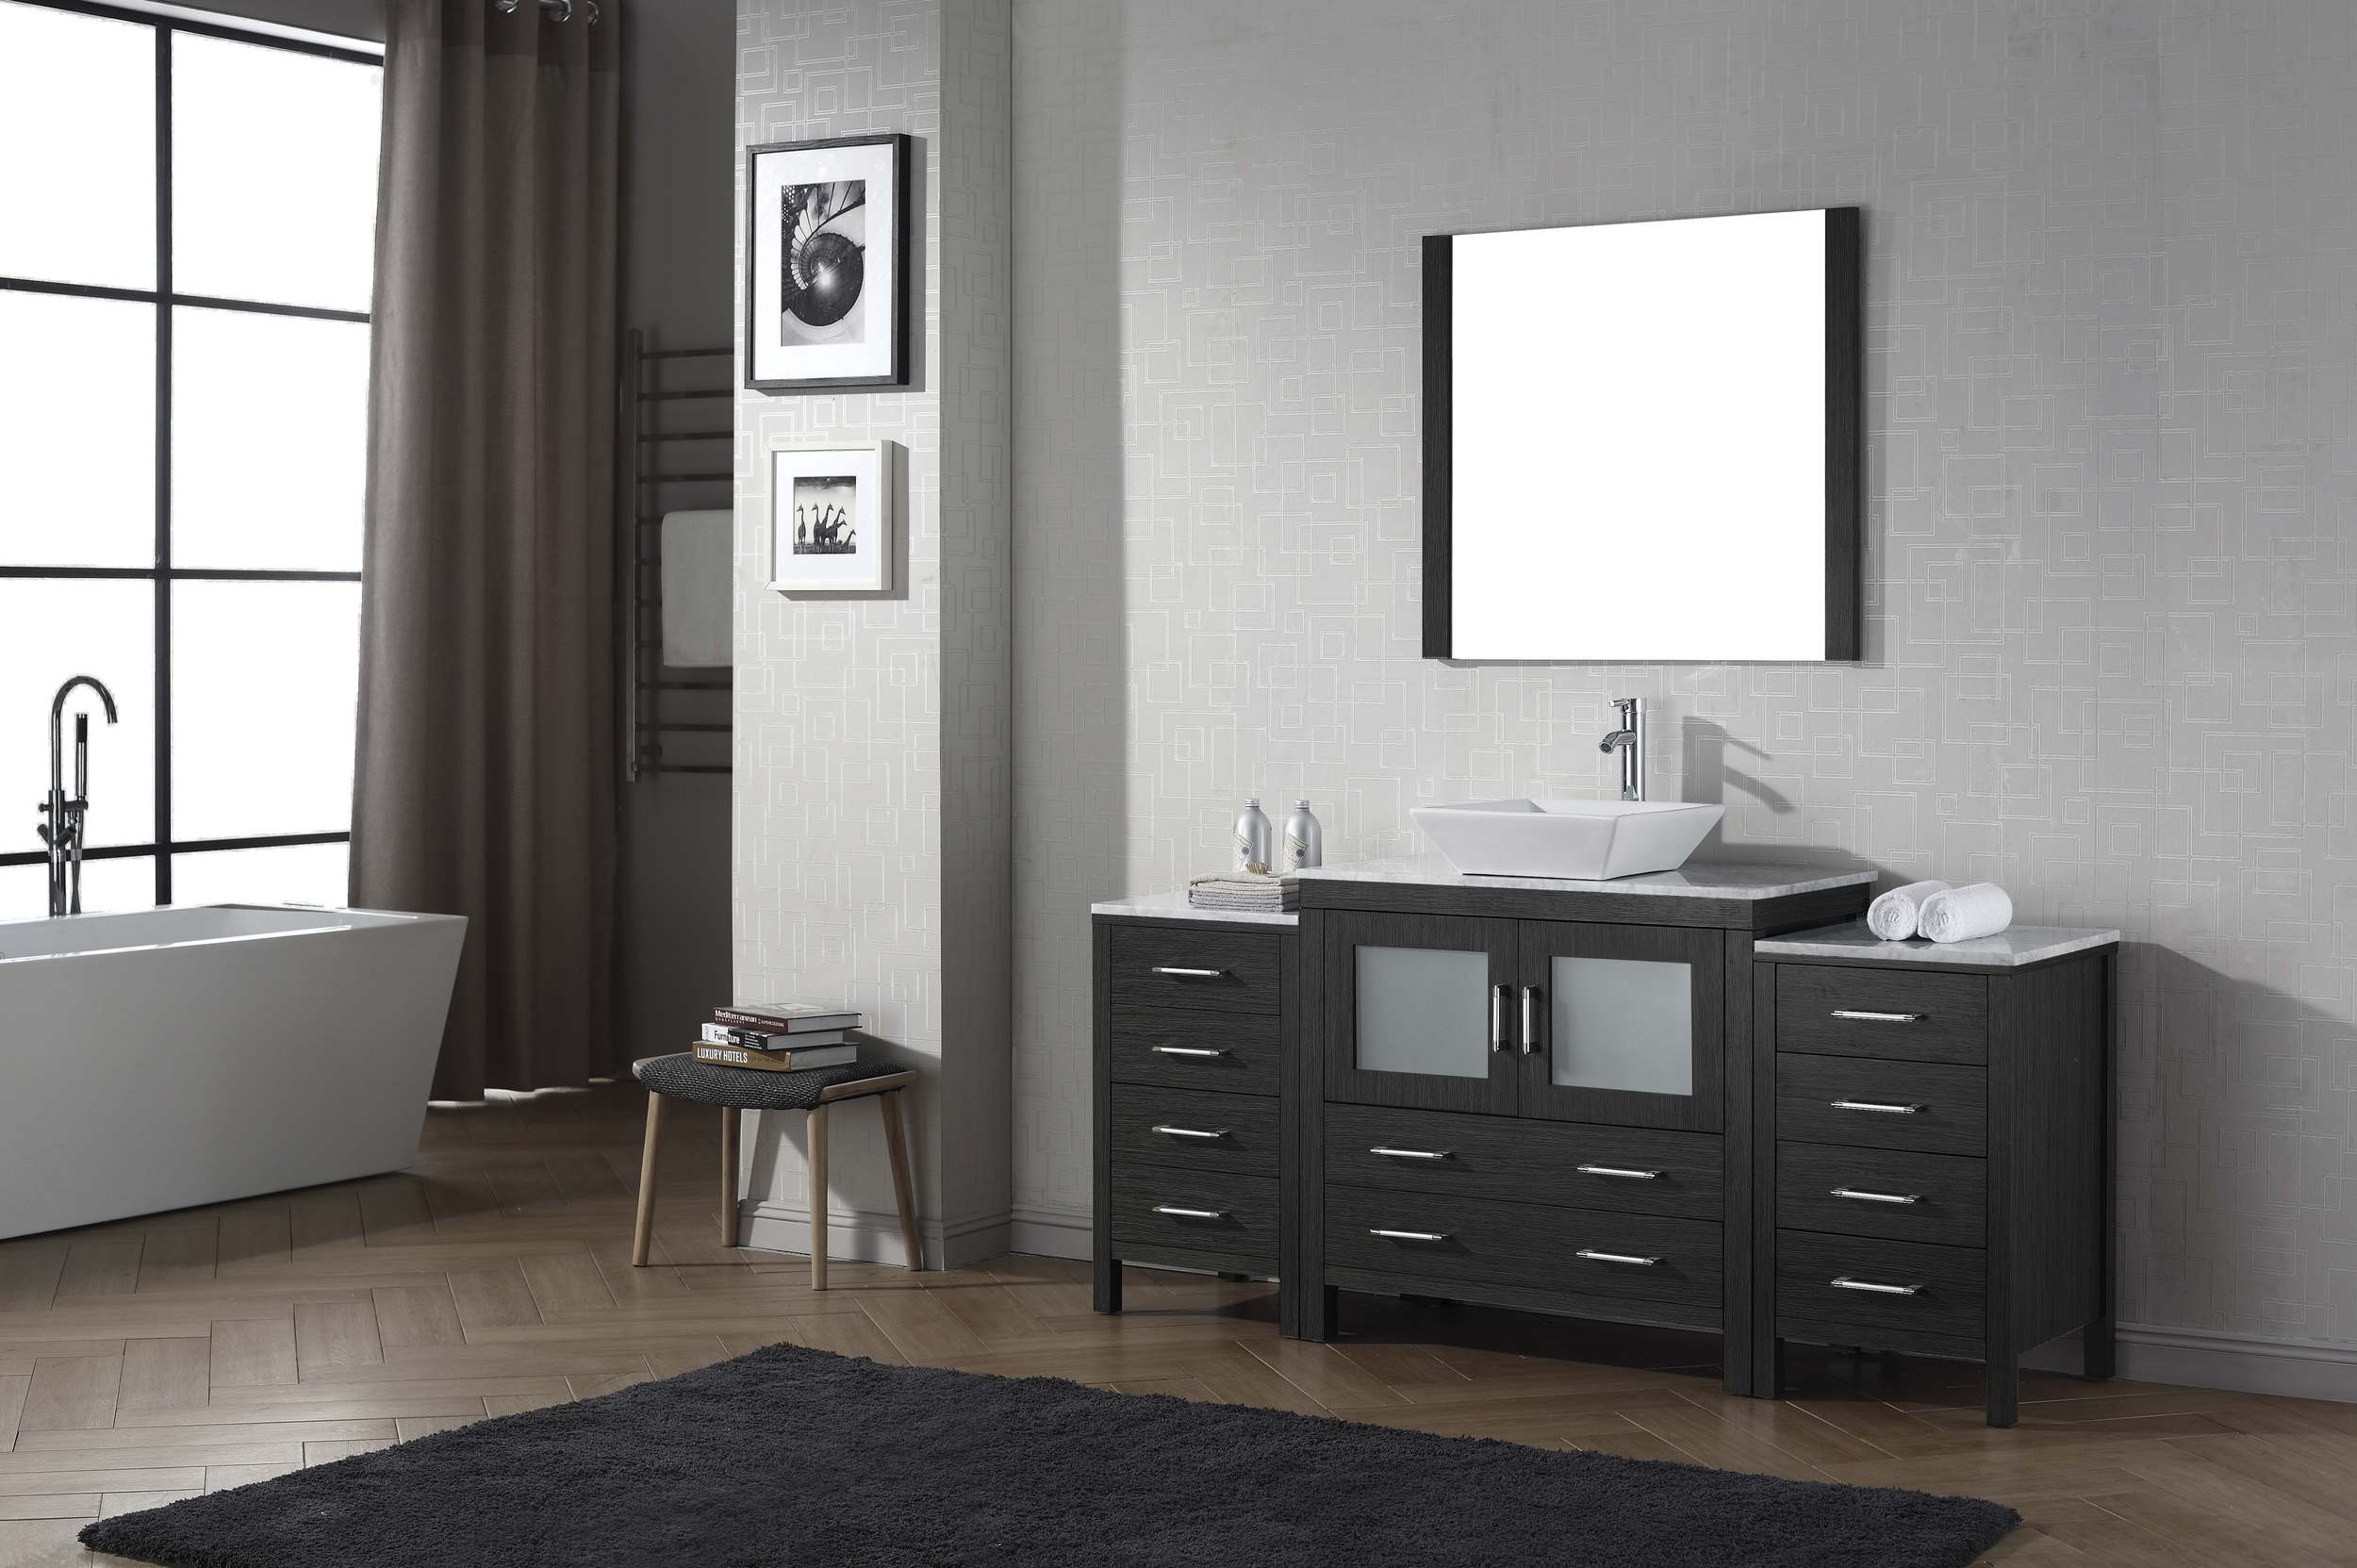 72 Inch Vanity Color Ideas For Your Bathroom Remodel